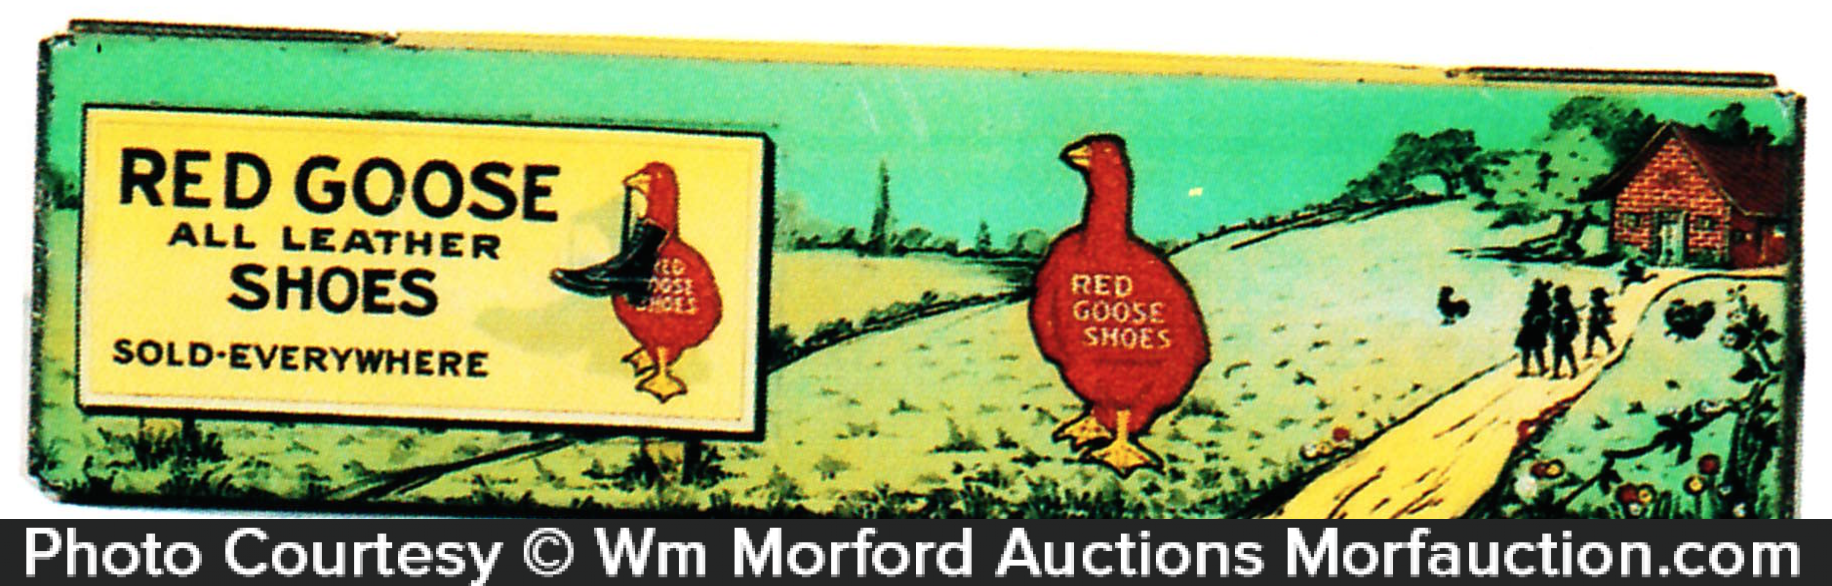 Red Goose Shoes Pencil Box